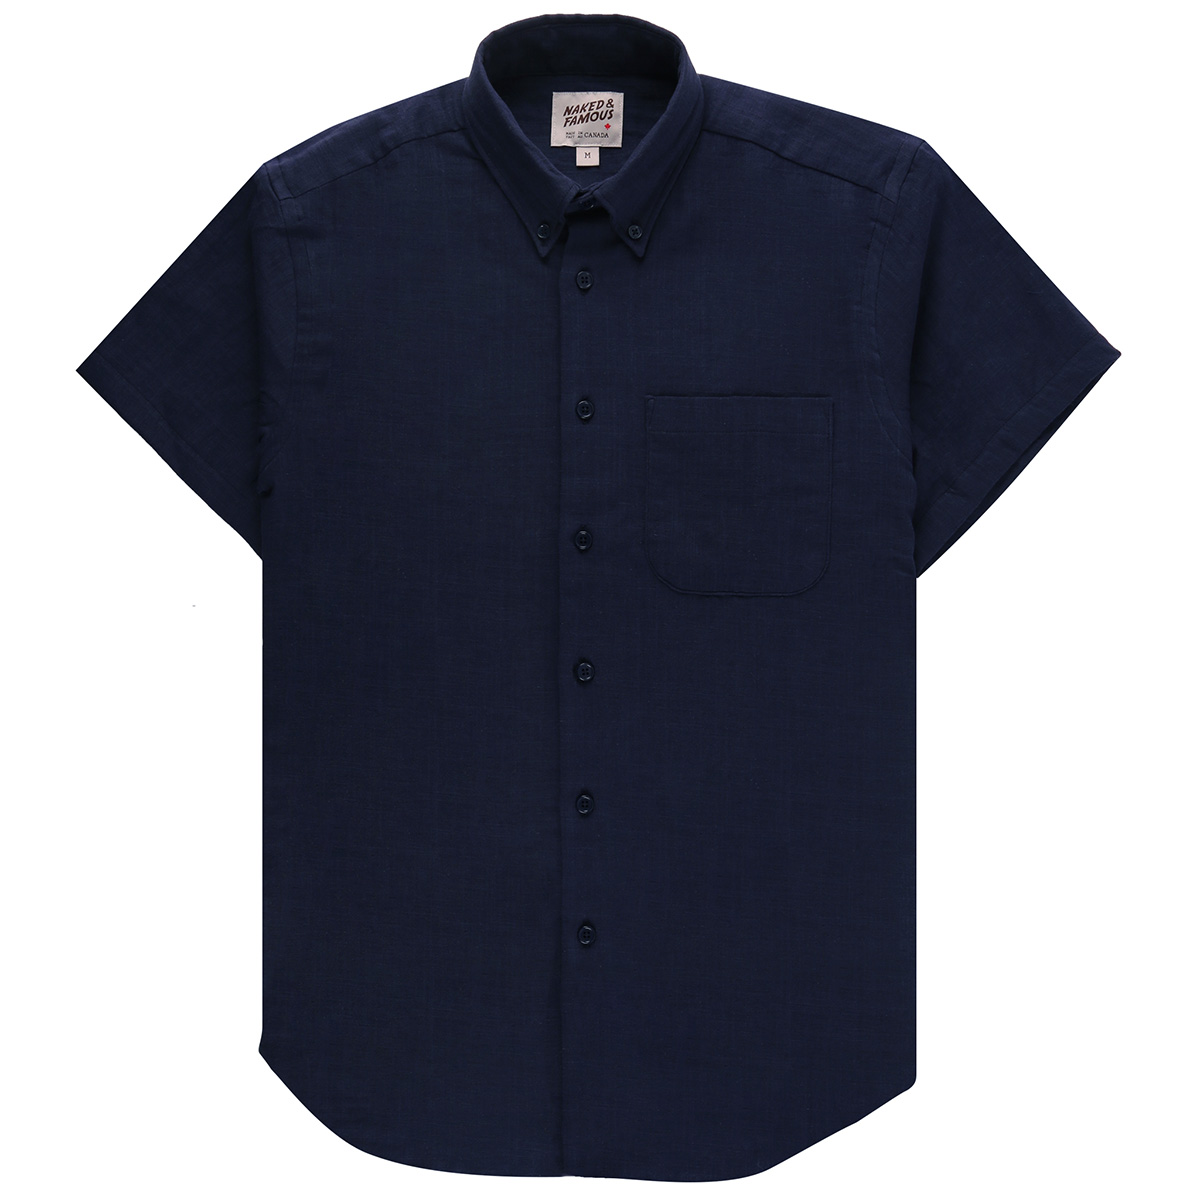 DOUBLE WEAVE GAUZE SLUB - NAVY - Short Sleeve Easy Shirt